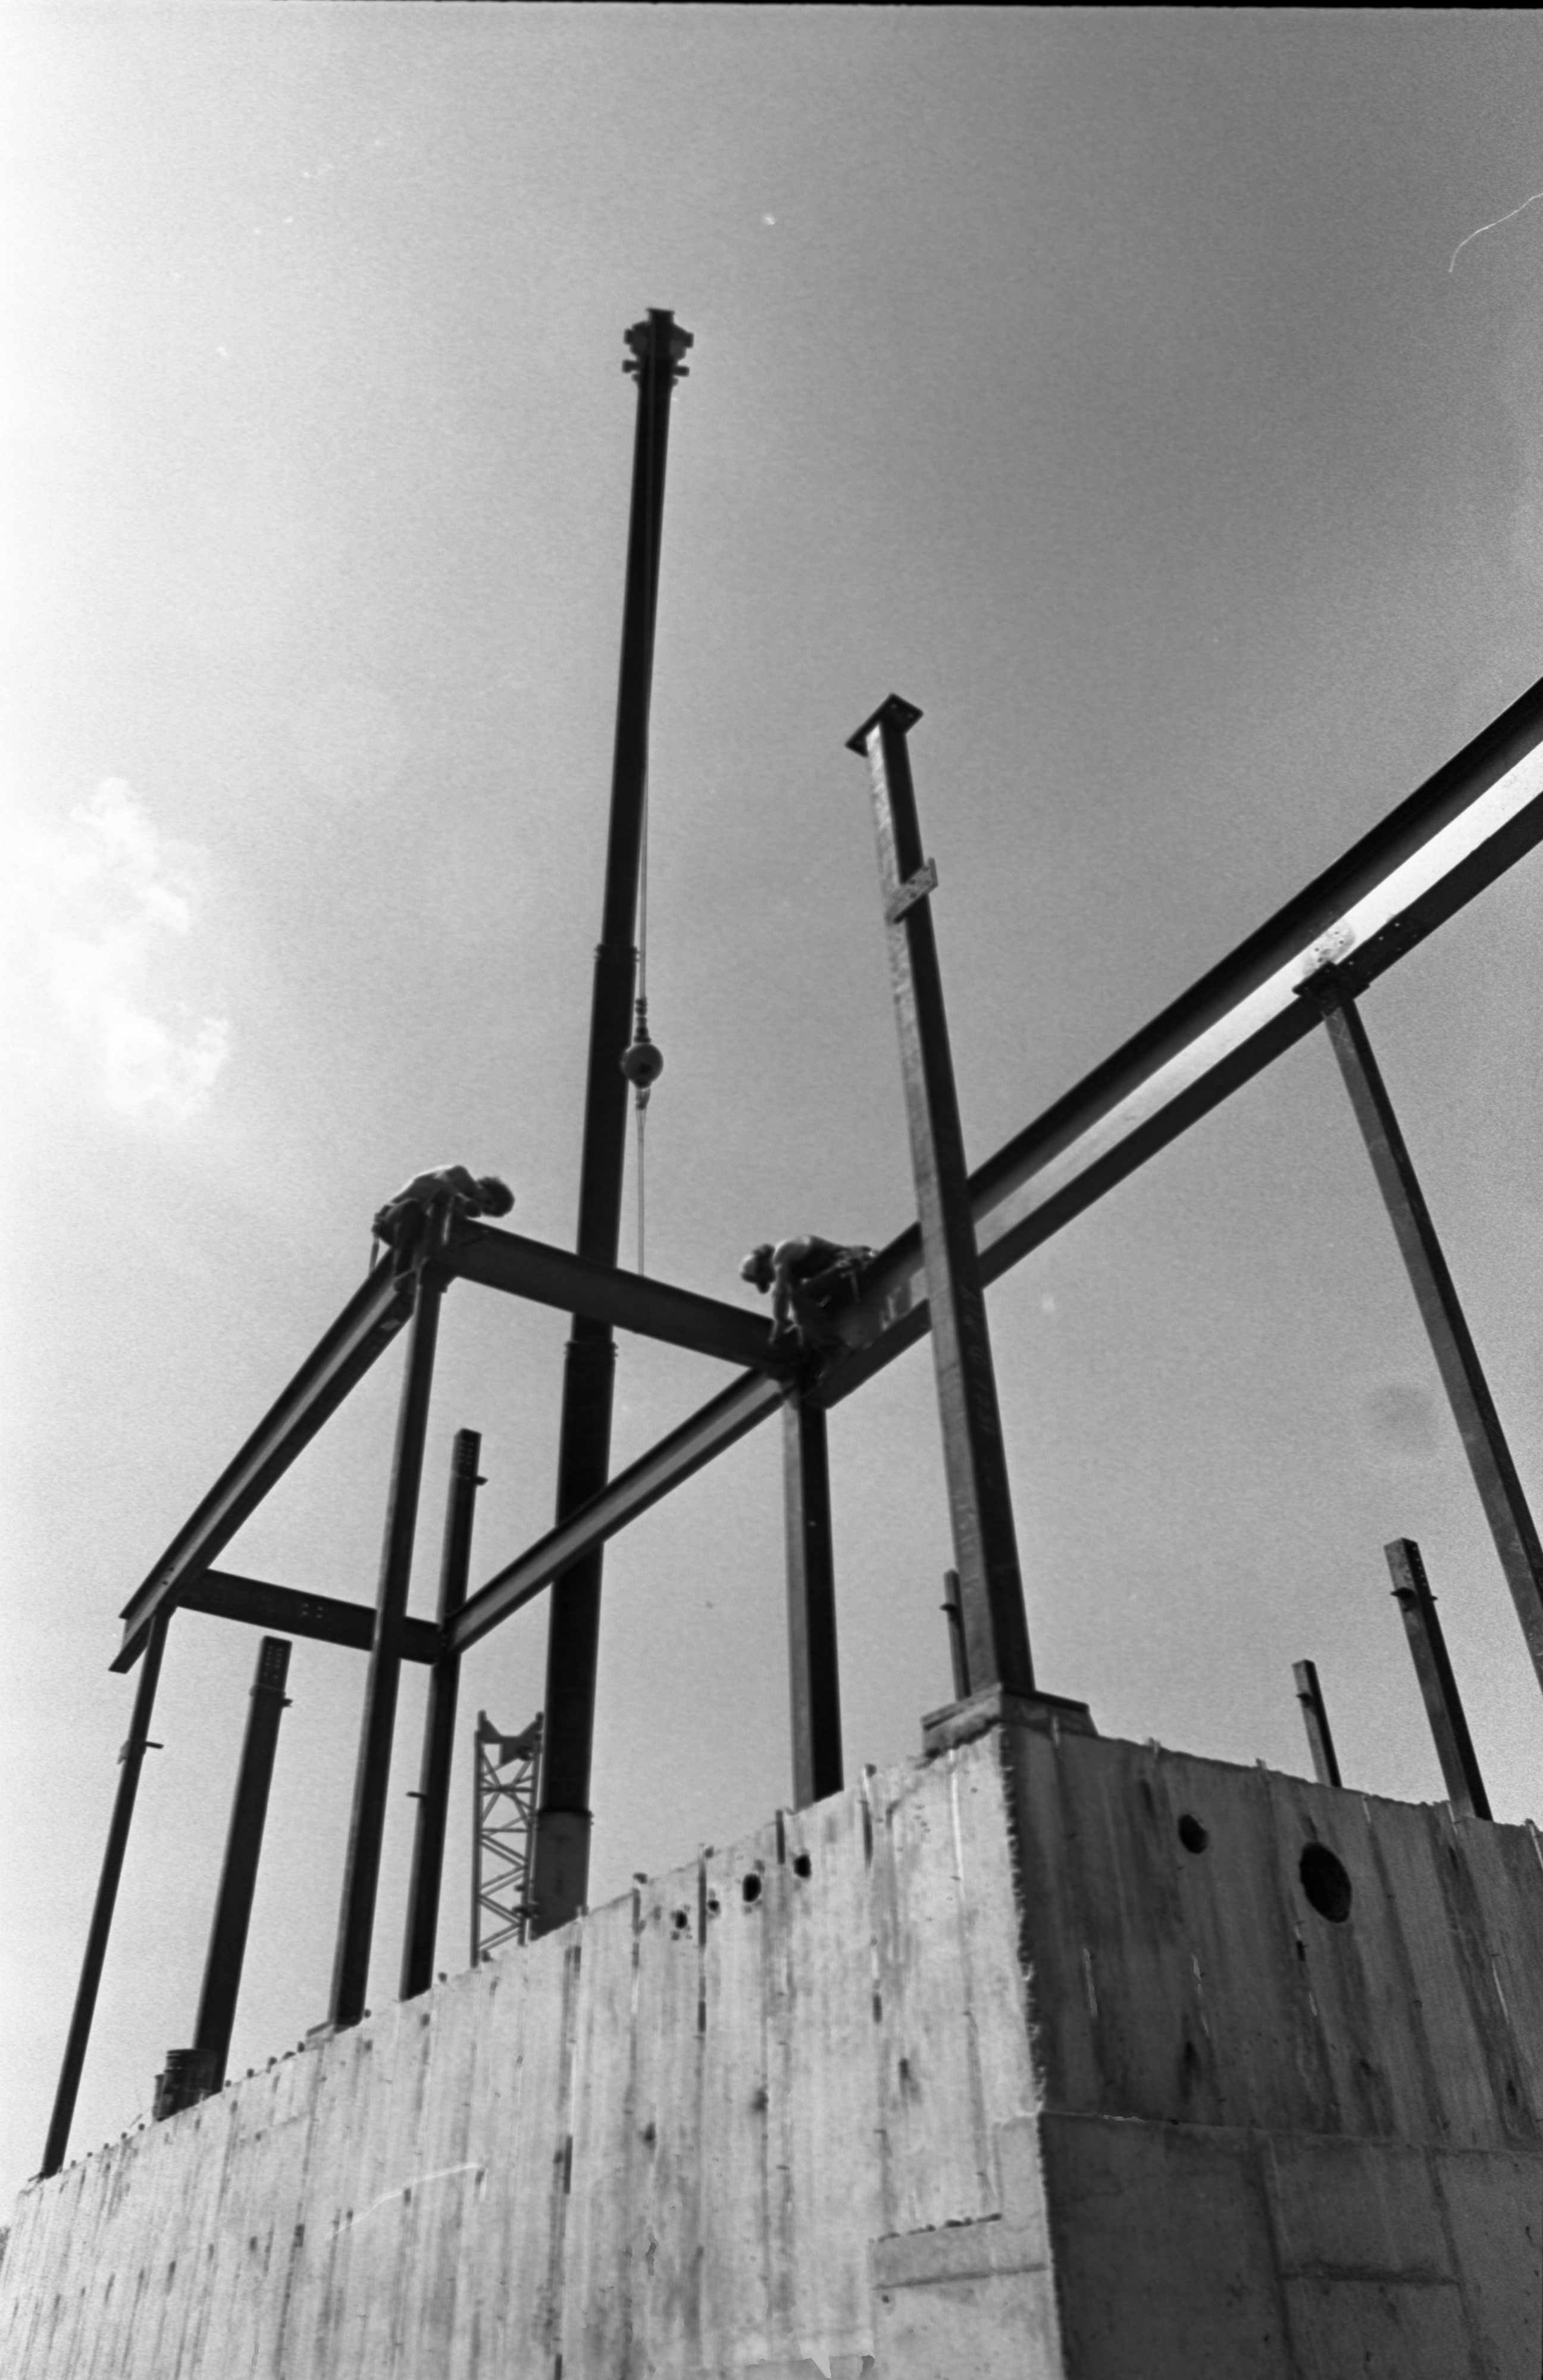 Construction Workers On Steel Beams For The Gerald R. Ford Presidential Library, May 11, 1979 image